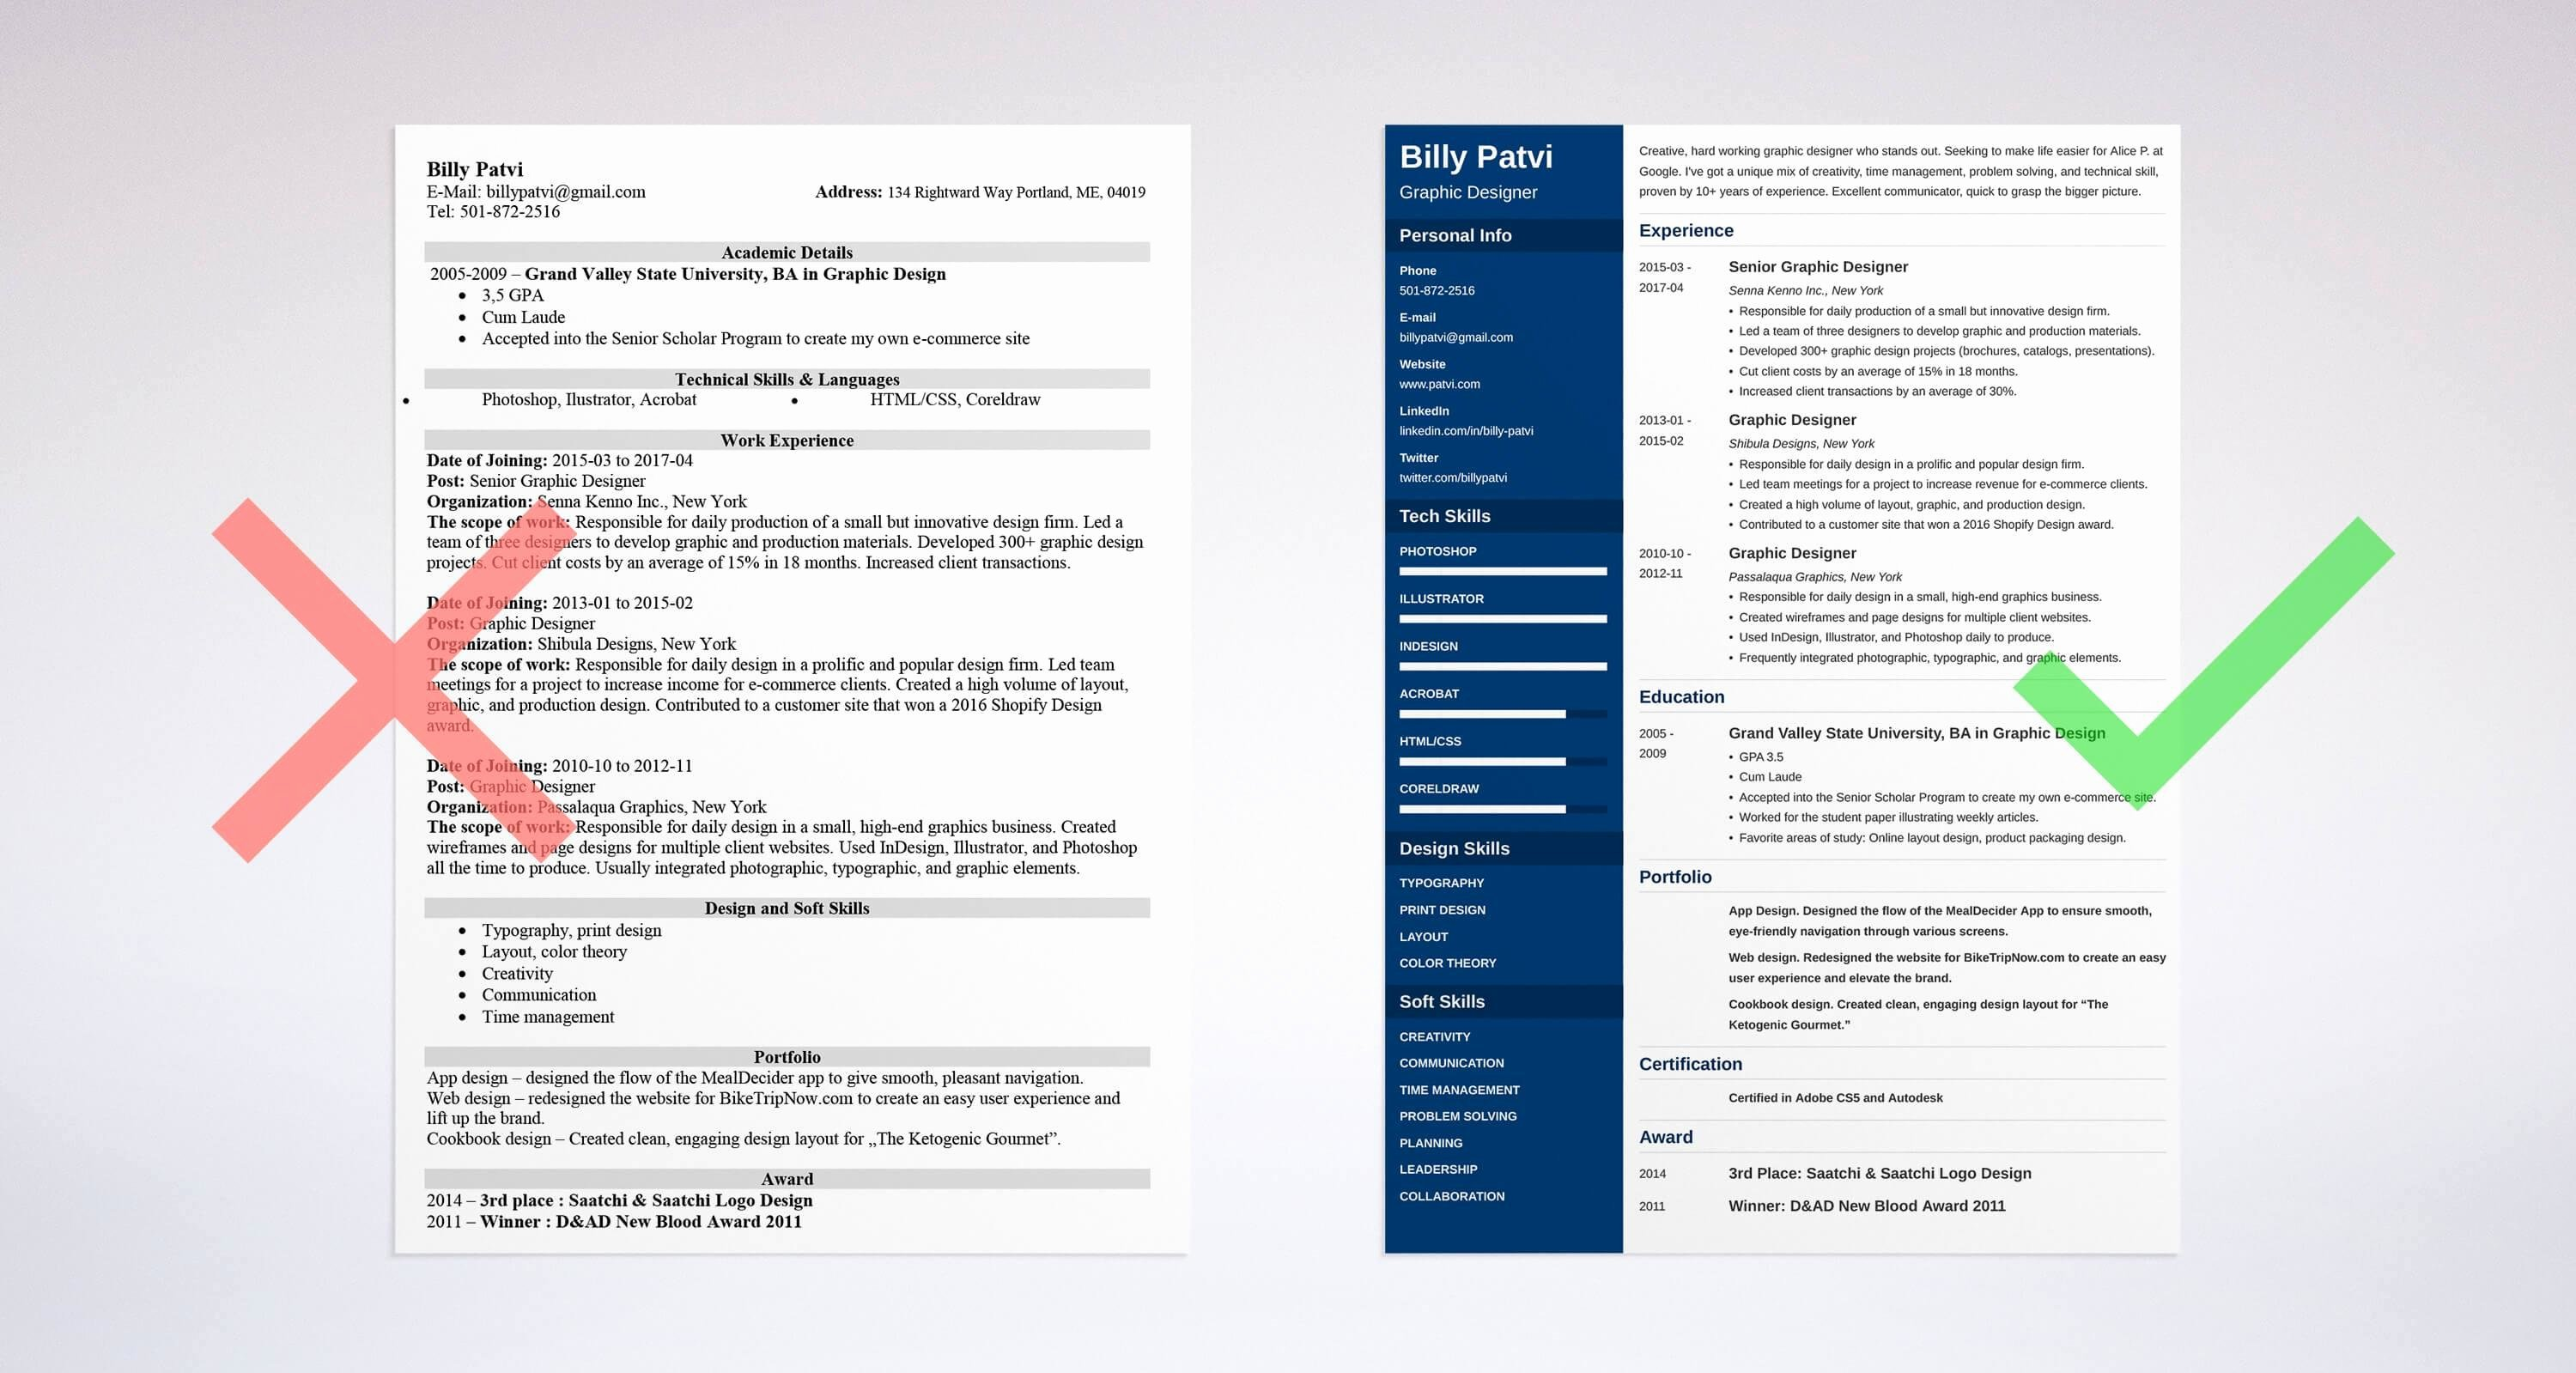 Graphic Design Resume Sample & Guide [ 20 Examples]